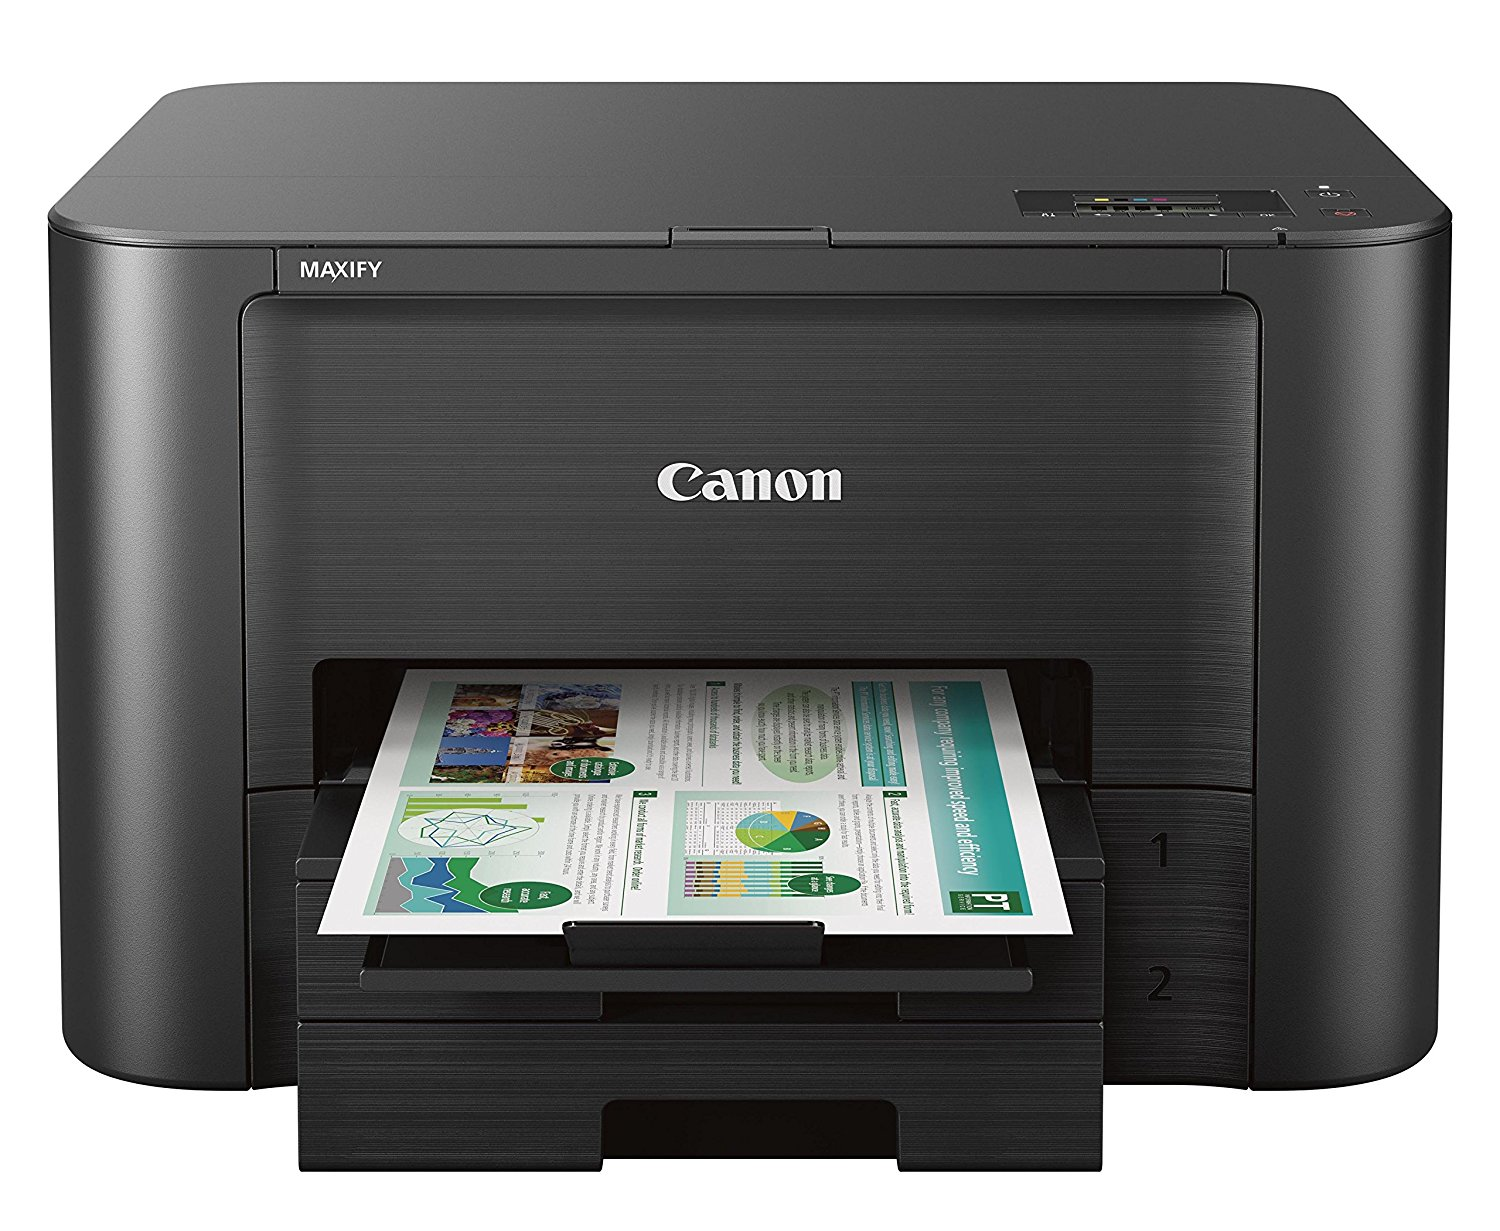 91wFEntcWvL. SL1500  - Canon MAXIFY MB5320 Drivers Download